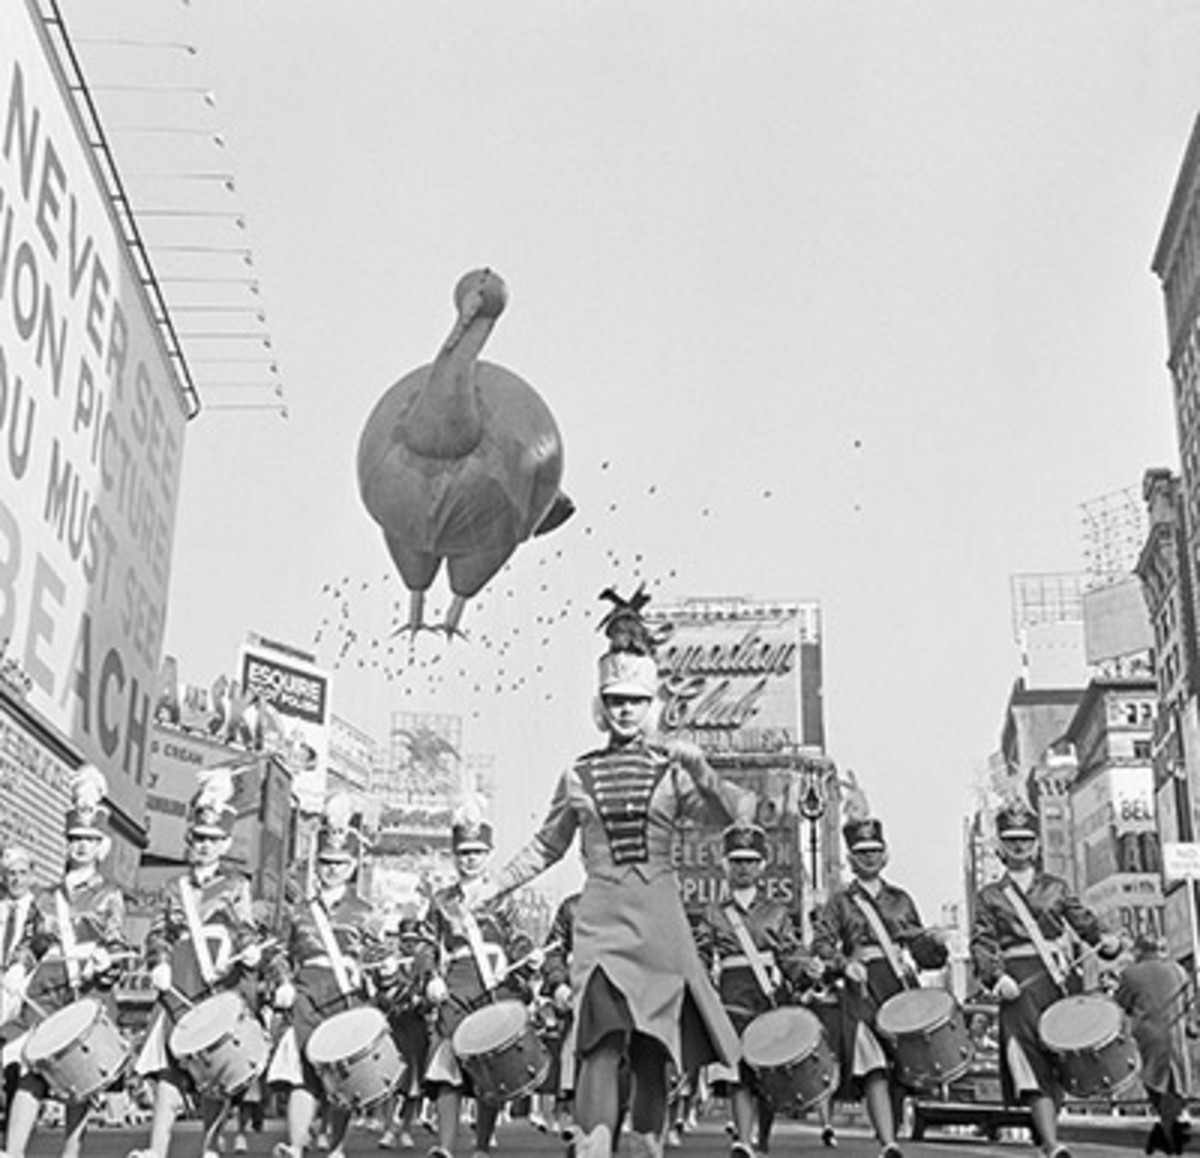 A helium-filled Turkey on it's way through Times Square in 1959, accompanied by a marching band. Photo: Bettmann/Contributor/Getty